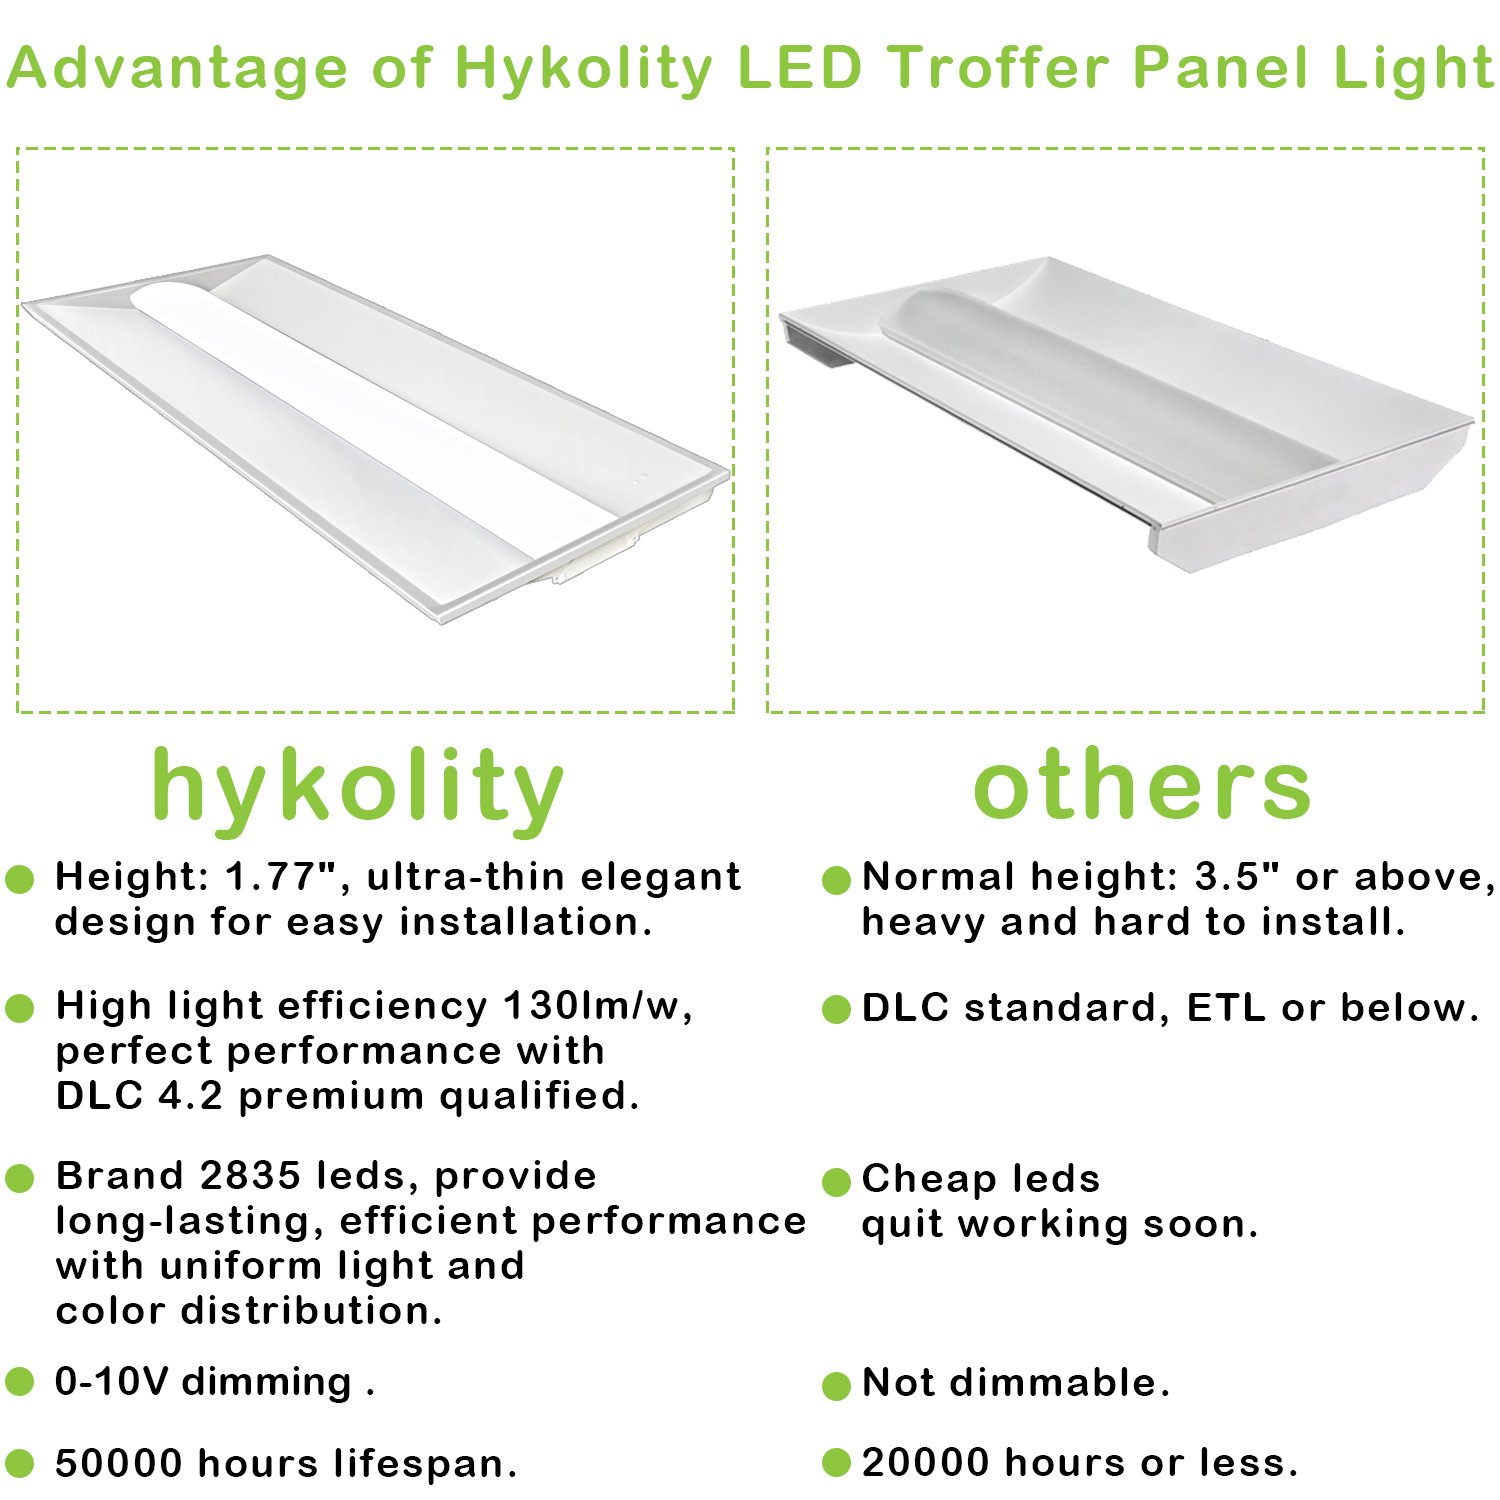 Hykolity Architectural Led Troffer 2x4 Ft 50w 6500lm 4000k 0 10v Wiring Diagram Dimmable Volumetric Drop Ceiling Panel Light Eligible For Rebate Program3